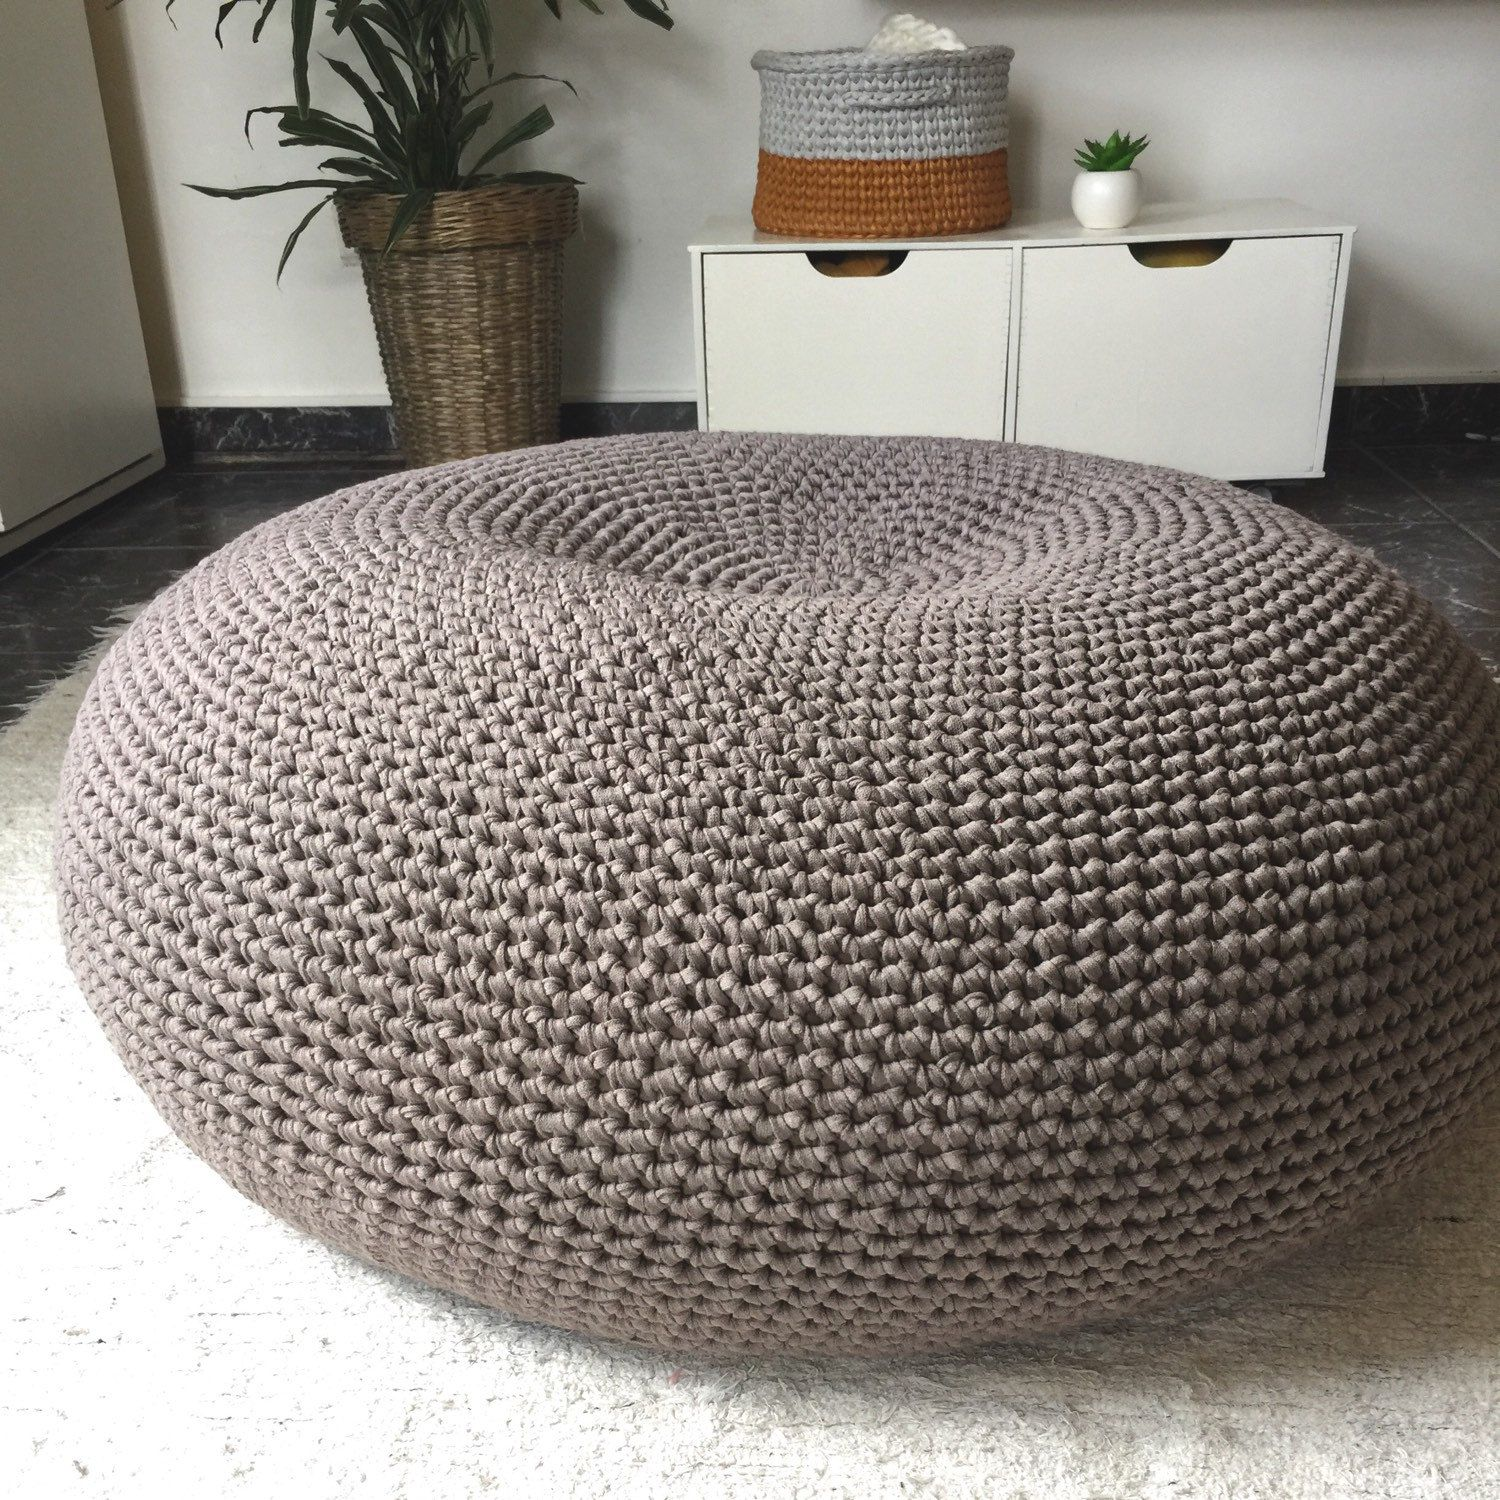 Giant Pouf Ottoman, Extra Large Floor Cushion, Bean Bag Chair, Large Round  Ottoman, Oversized Floor Seating Pillow, XXL Knit Pouffe